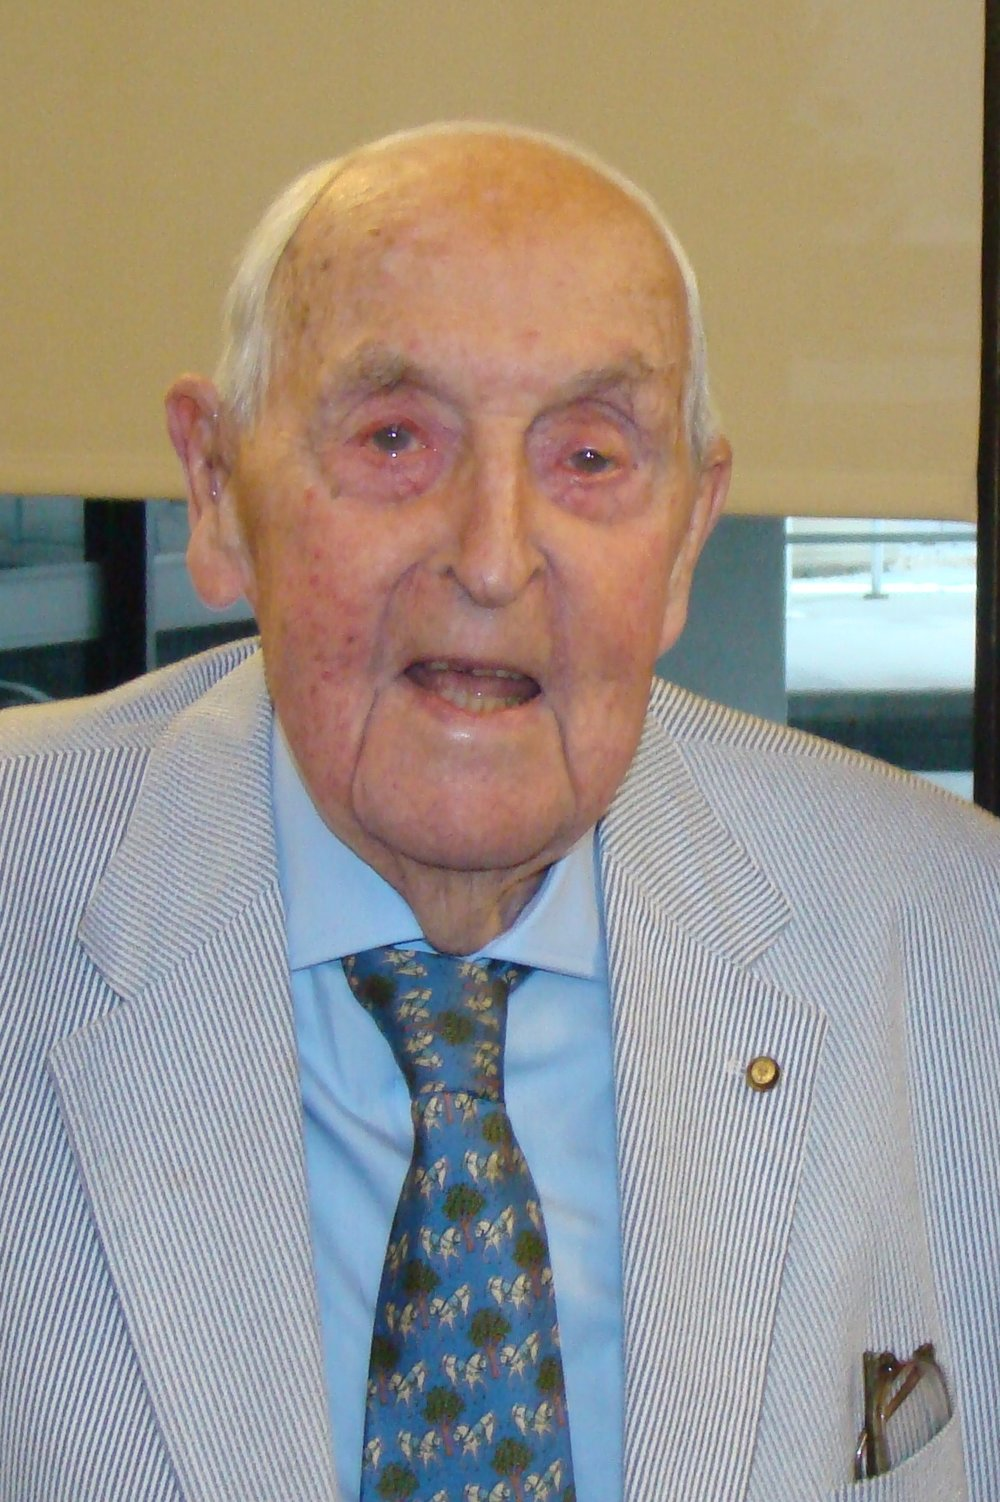 Sir Lenox Hewitt - 1, 15 Nov '13.JPG